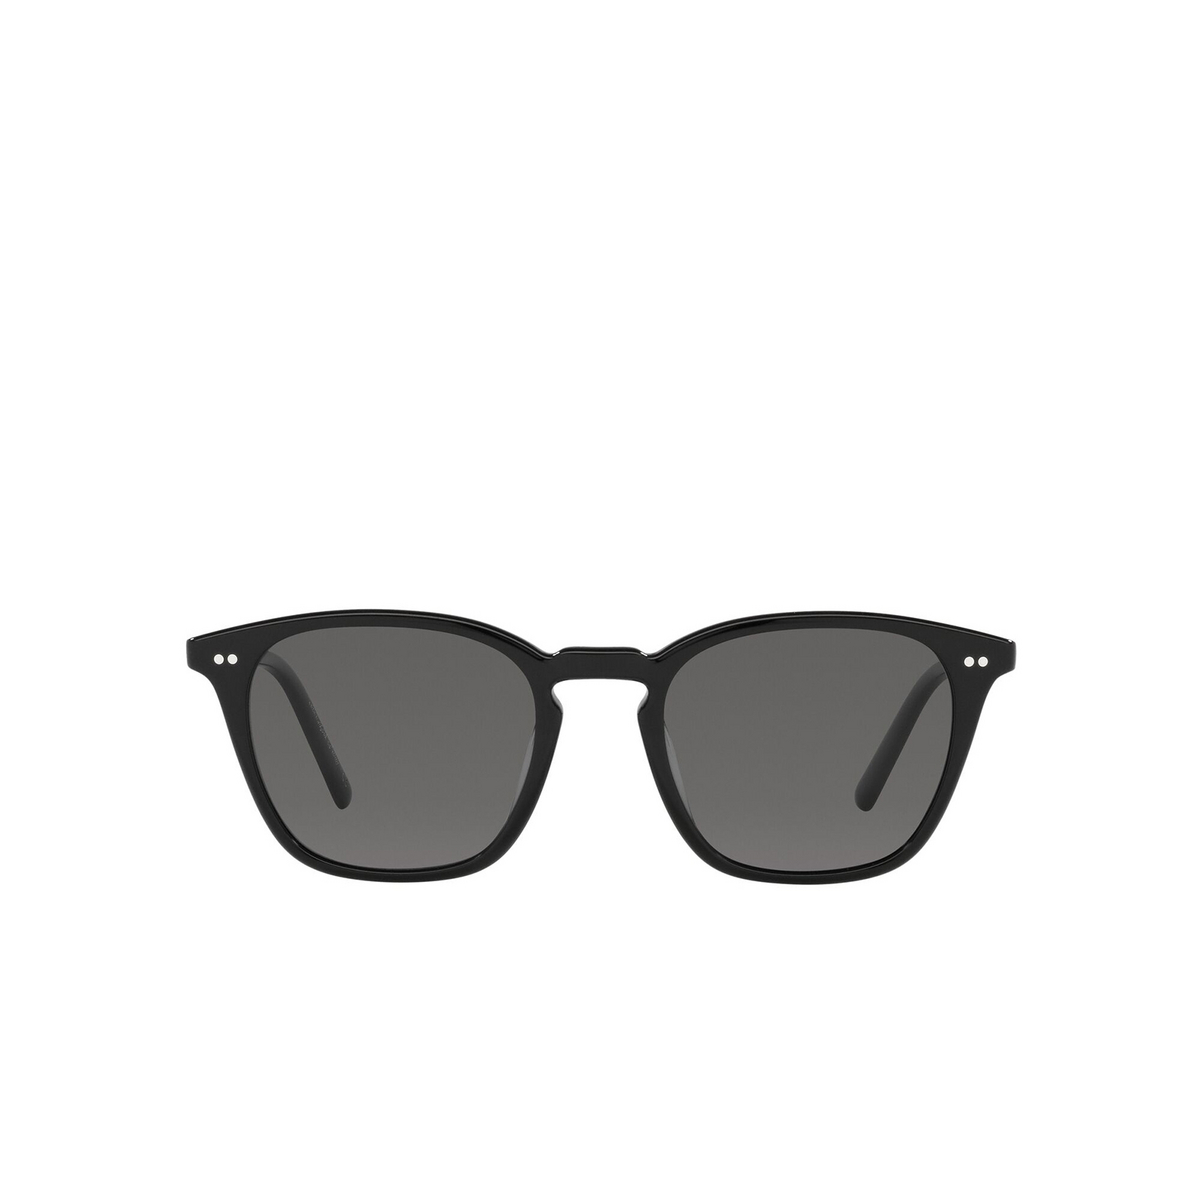 Oliver Peoples® Square Sunglasses: Frère Ny OV5462SU color Black 100581 - front view.